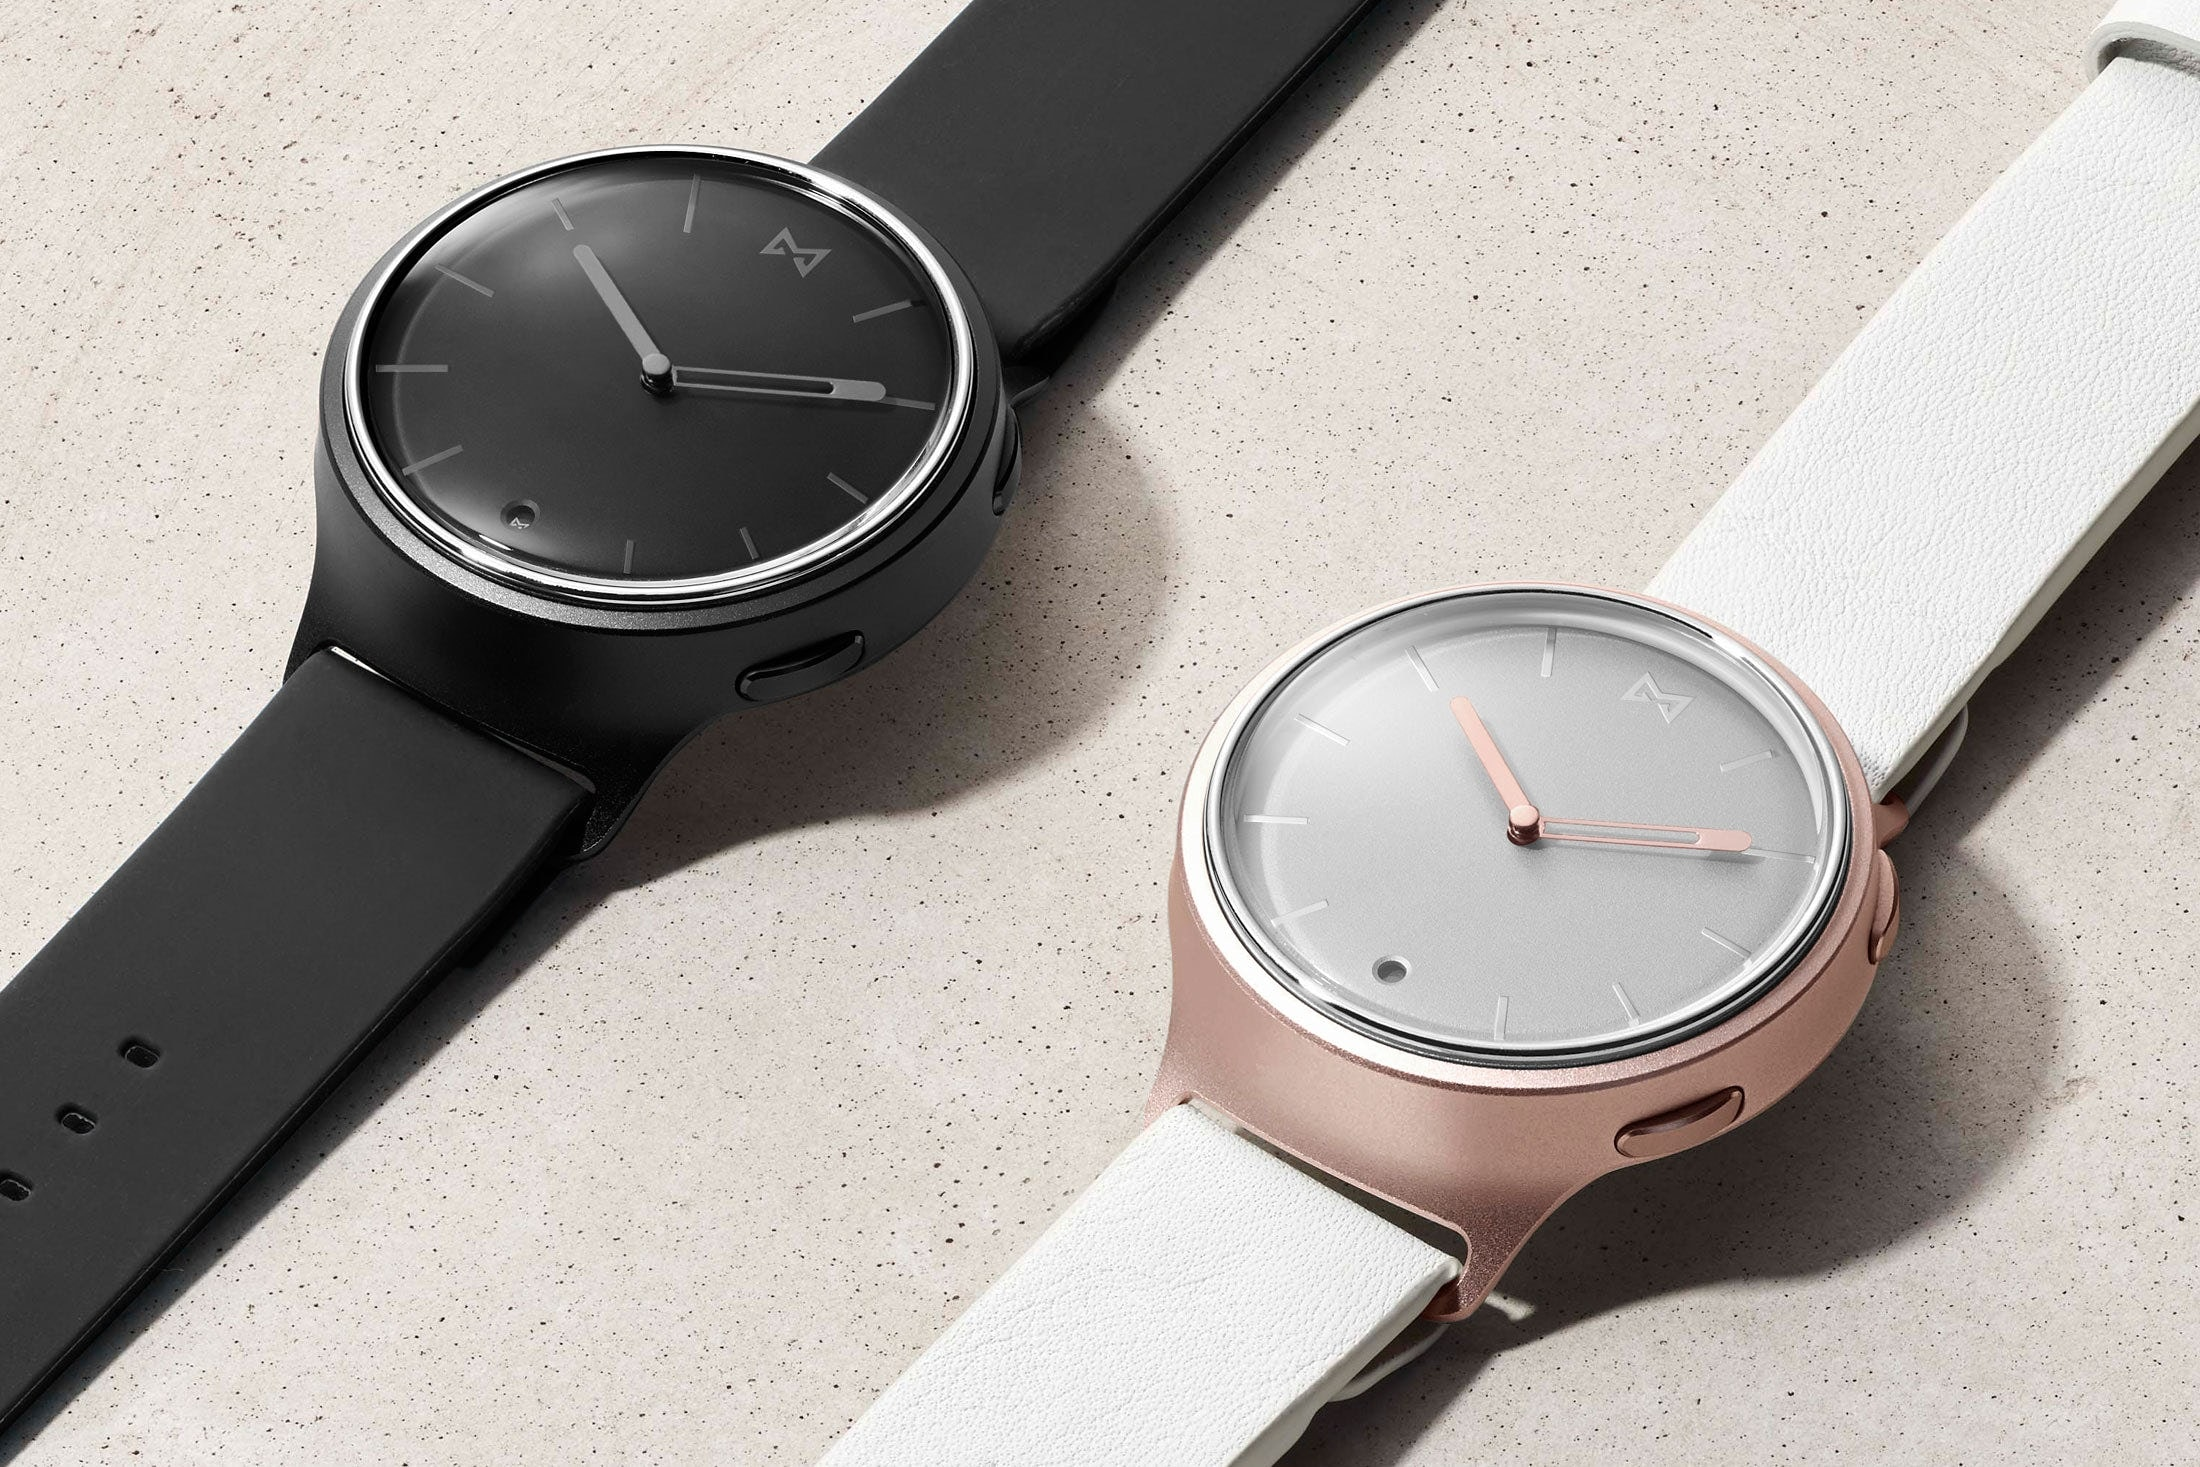 Business News: Smartwatches Are Both A Blessing And A Curse For Fossil Business News: Smartwatches Are Both A Blessing And A Curse For Fossil misfit